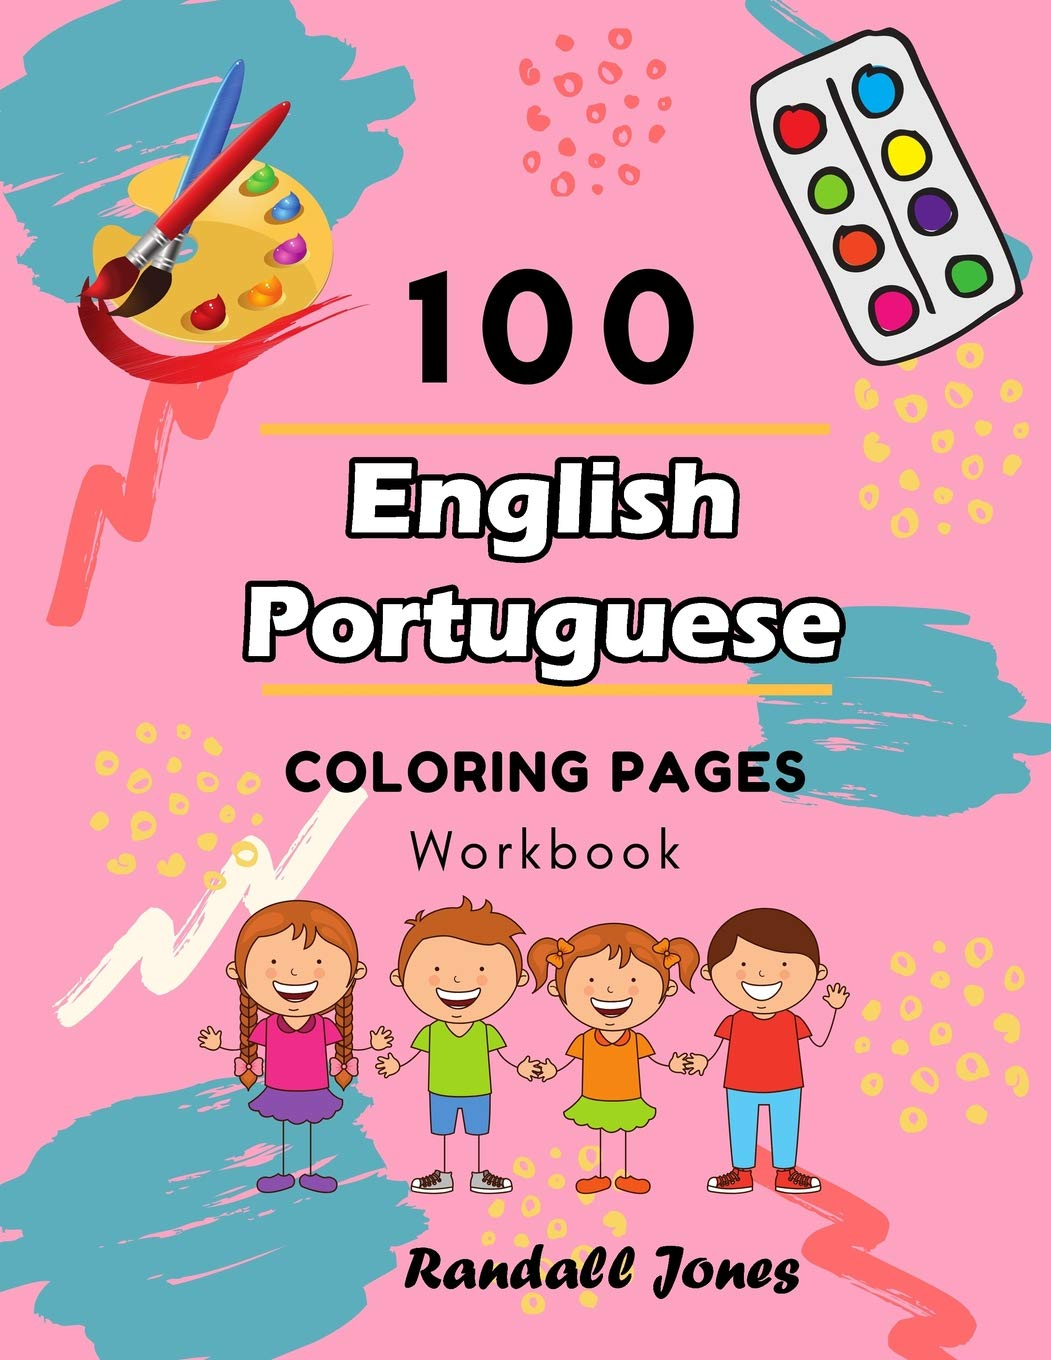 100 English Portuguese Coloring Pages Workbook Awesome Coloring Book For Kids Jones Randall 9781097826834 Amazon Com Books